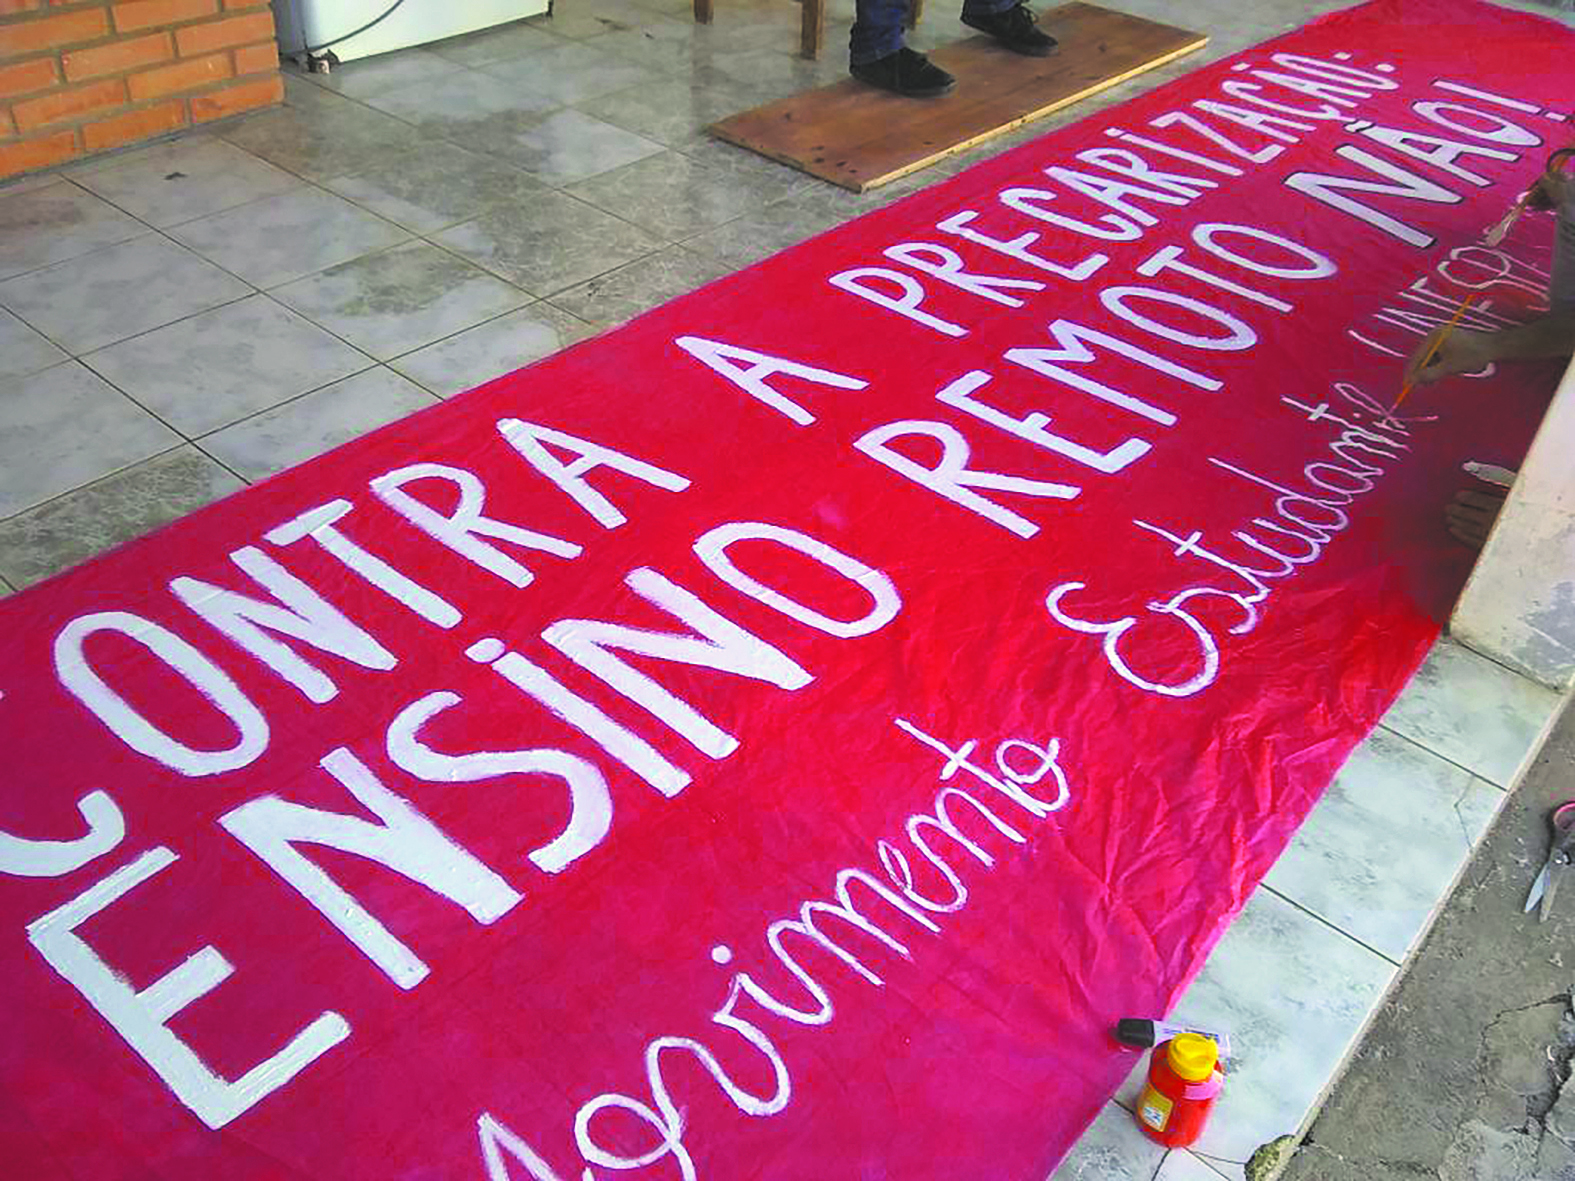 With banners against precarious teaching, Unesp students carry out mobilizations.